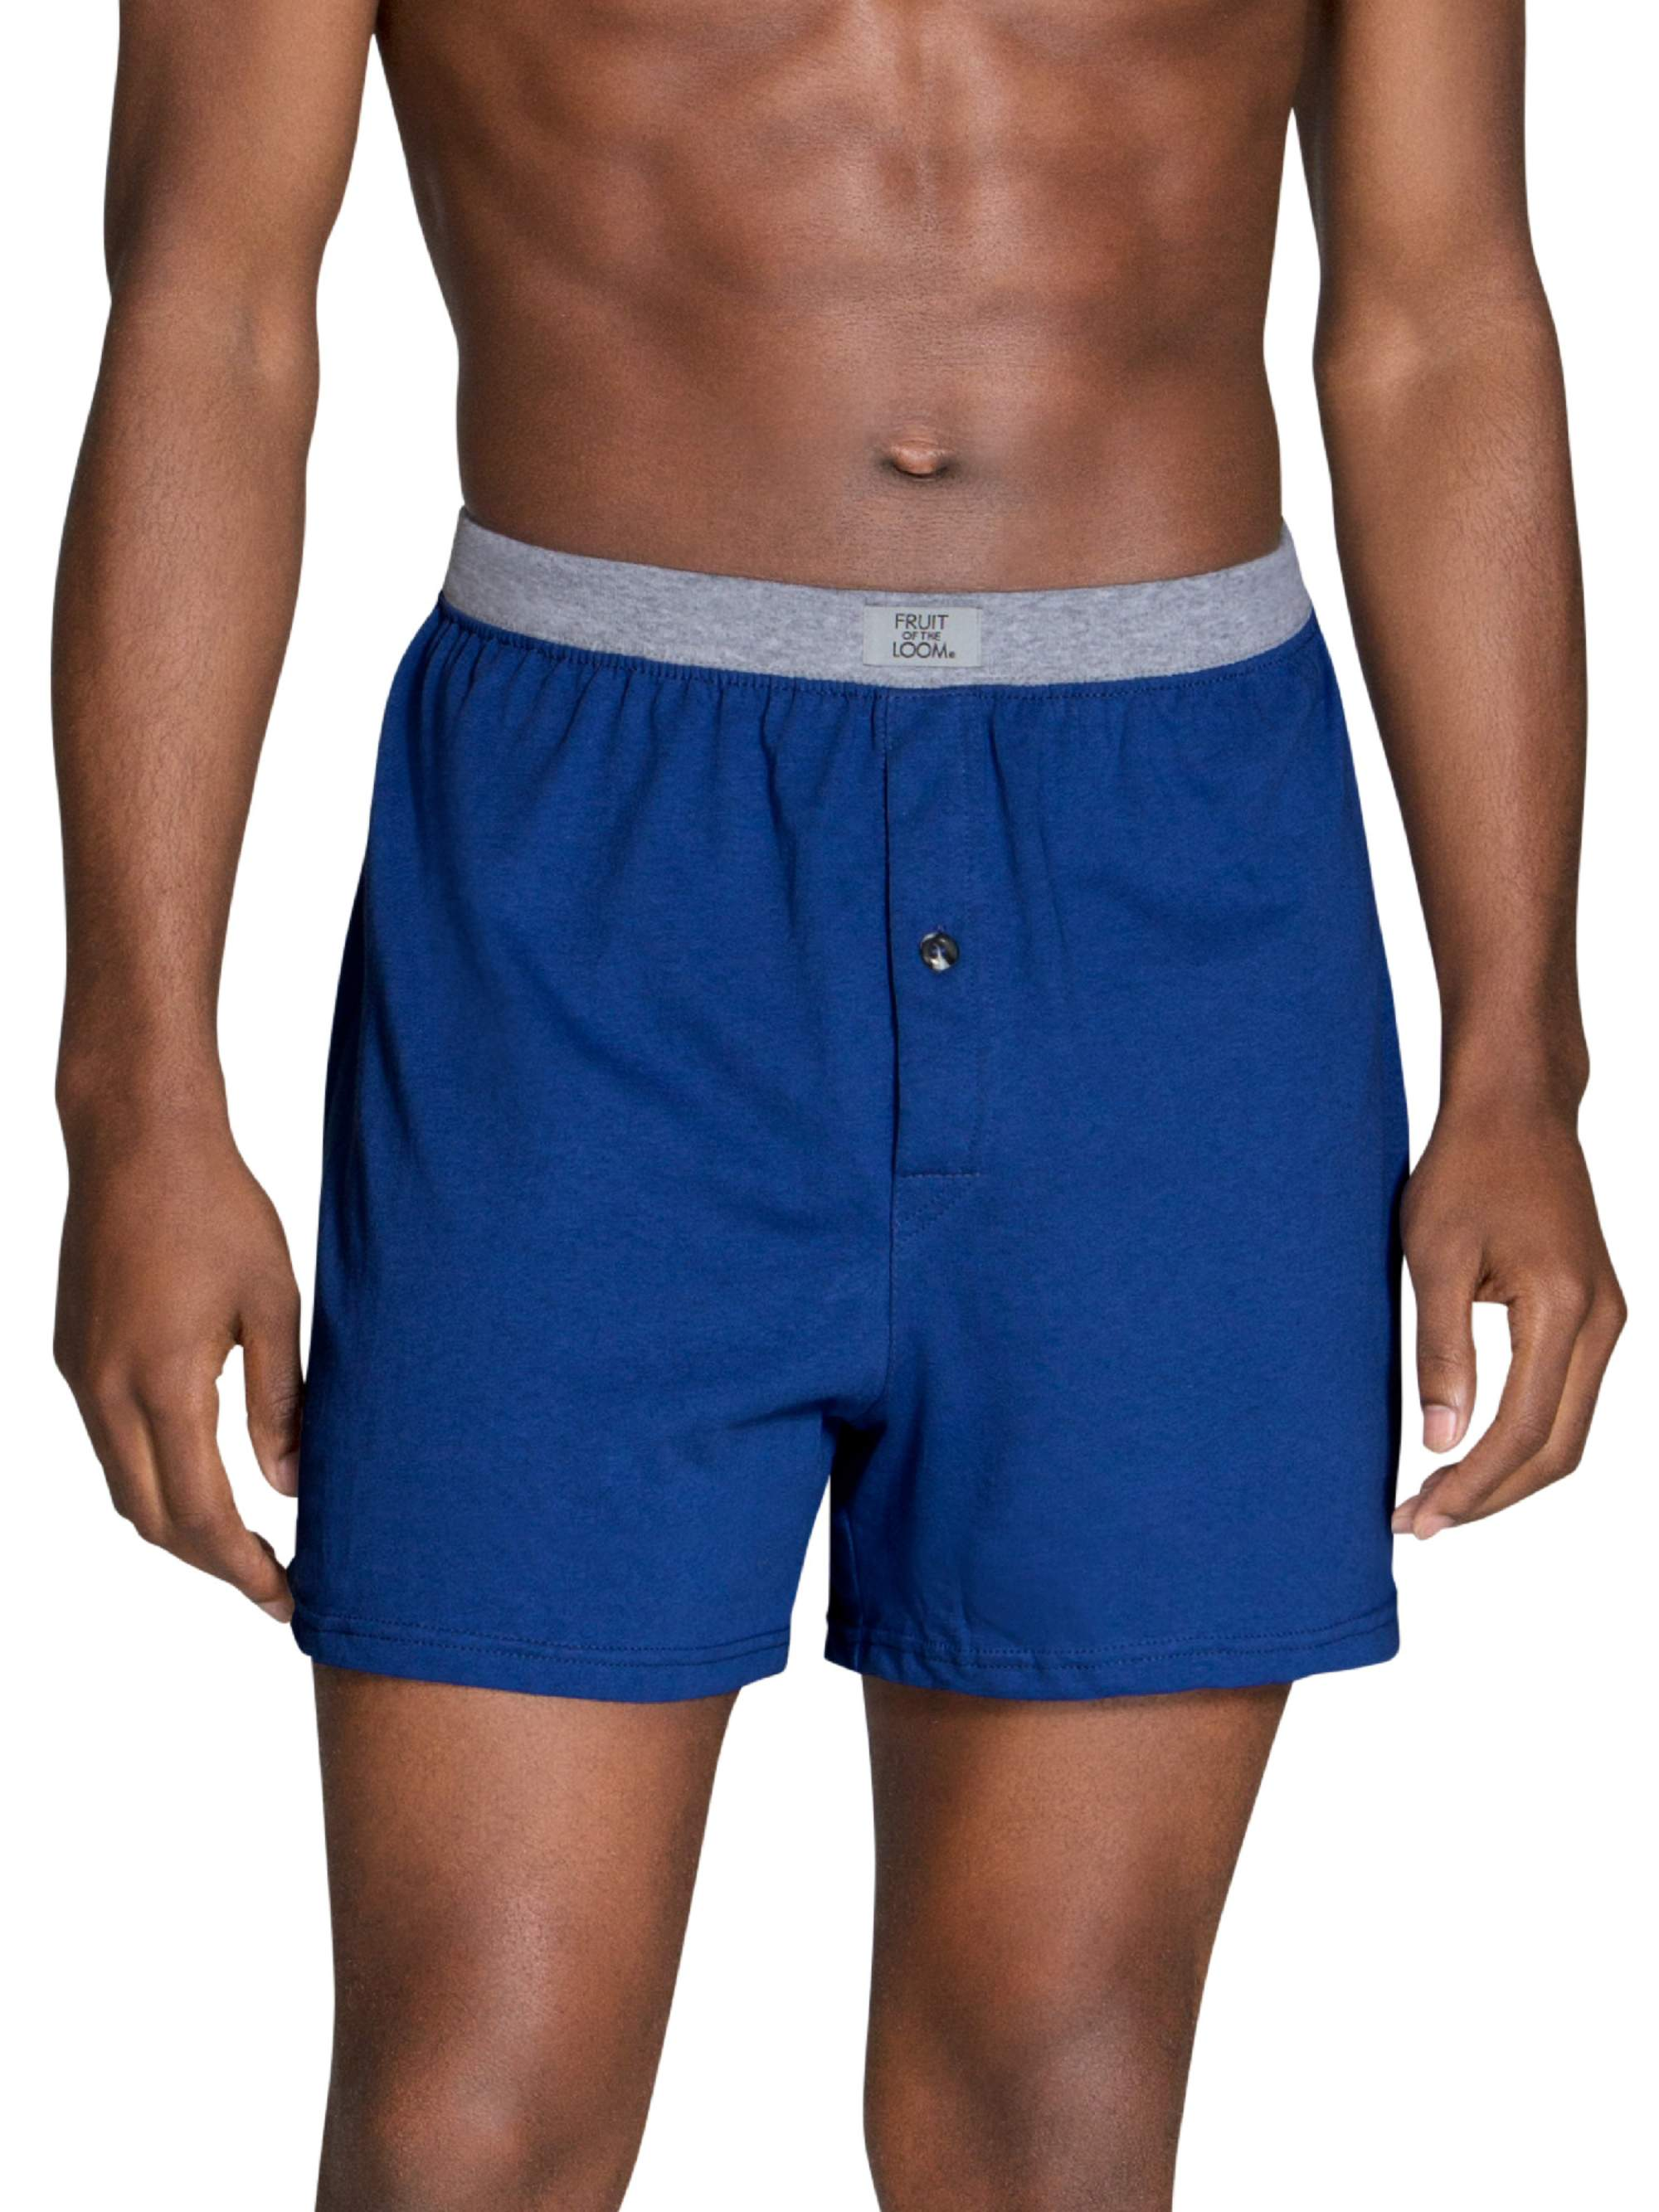 Men's Dual Defense Assorted Knit Boxers, 5 Pack